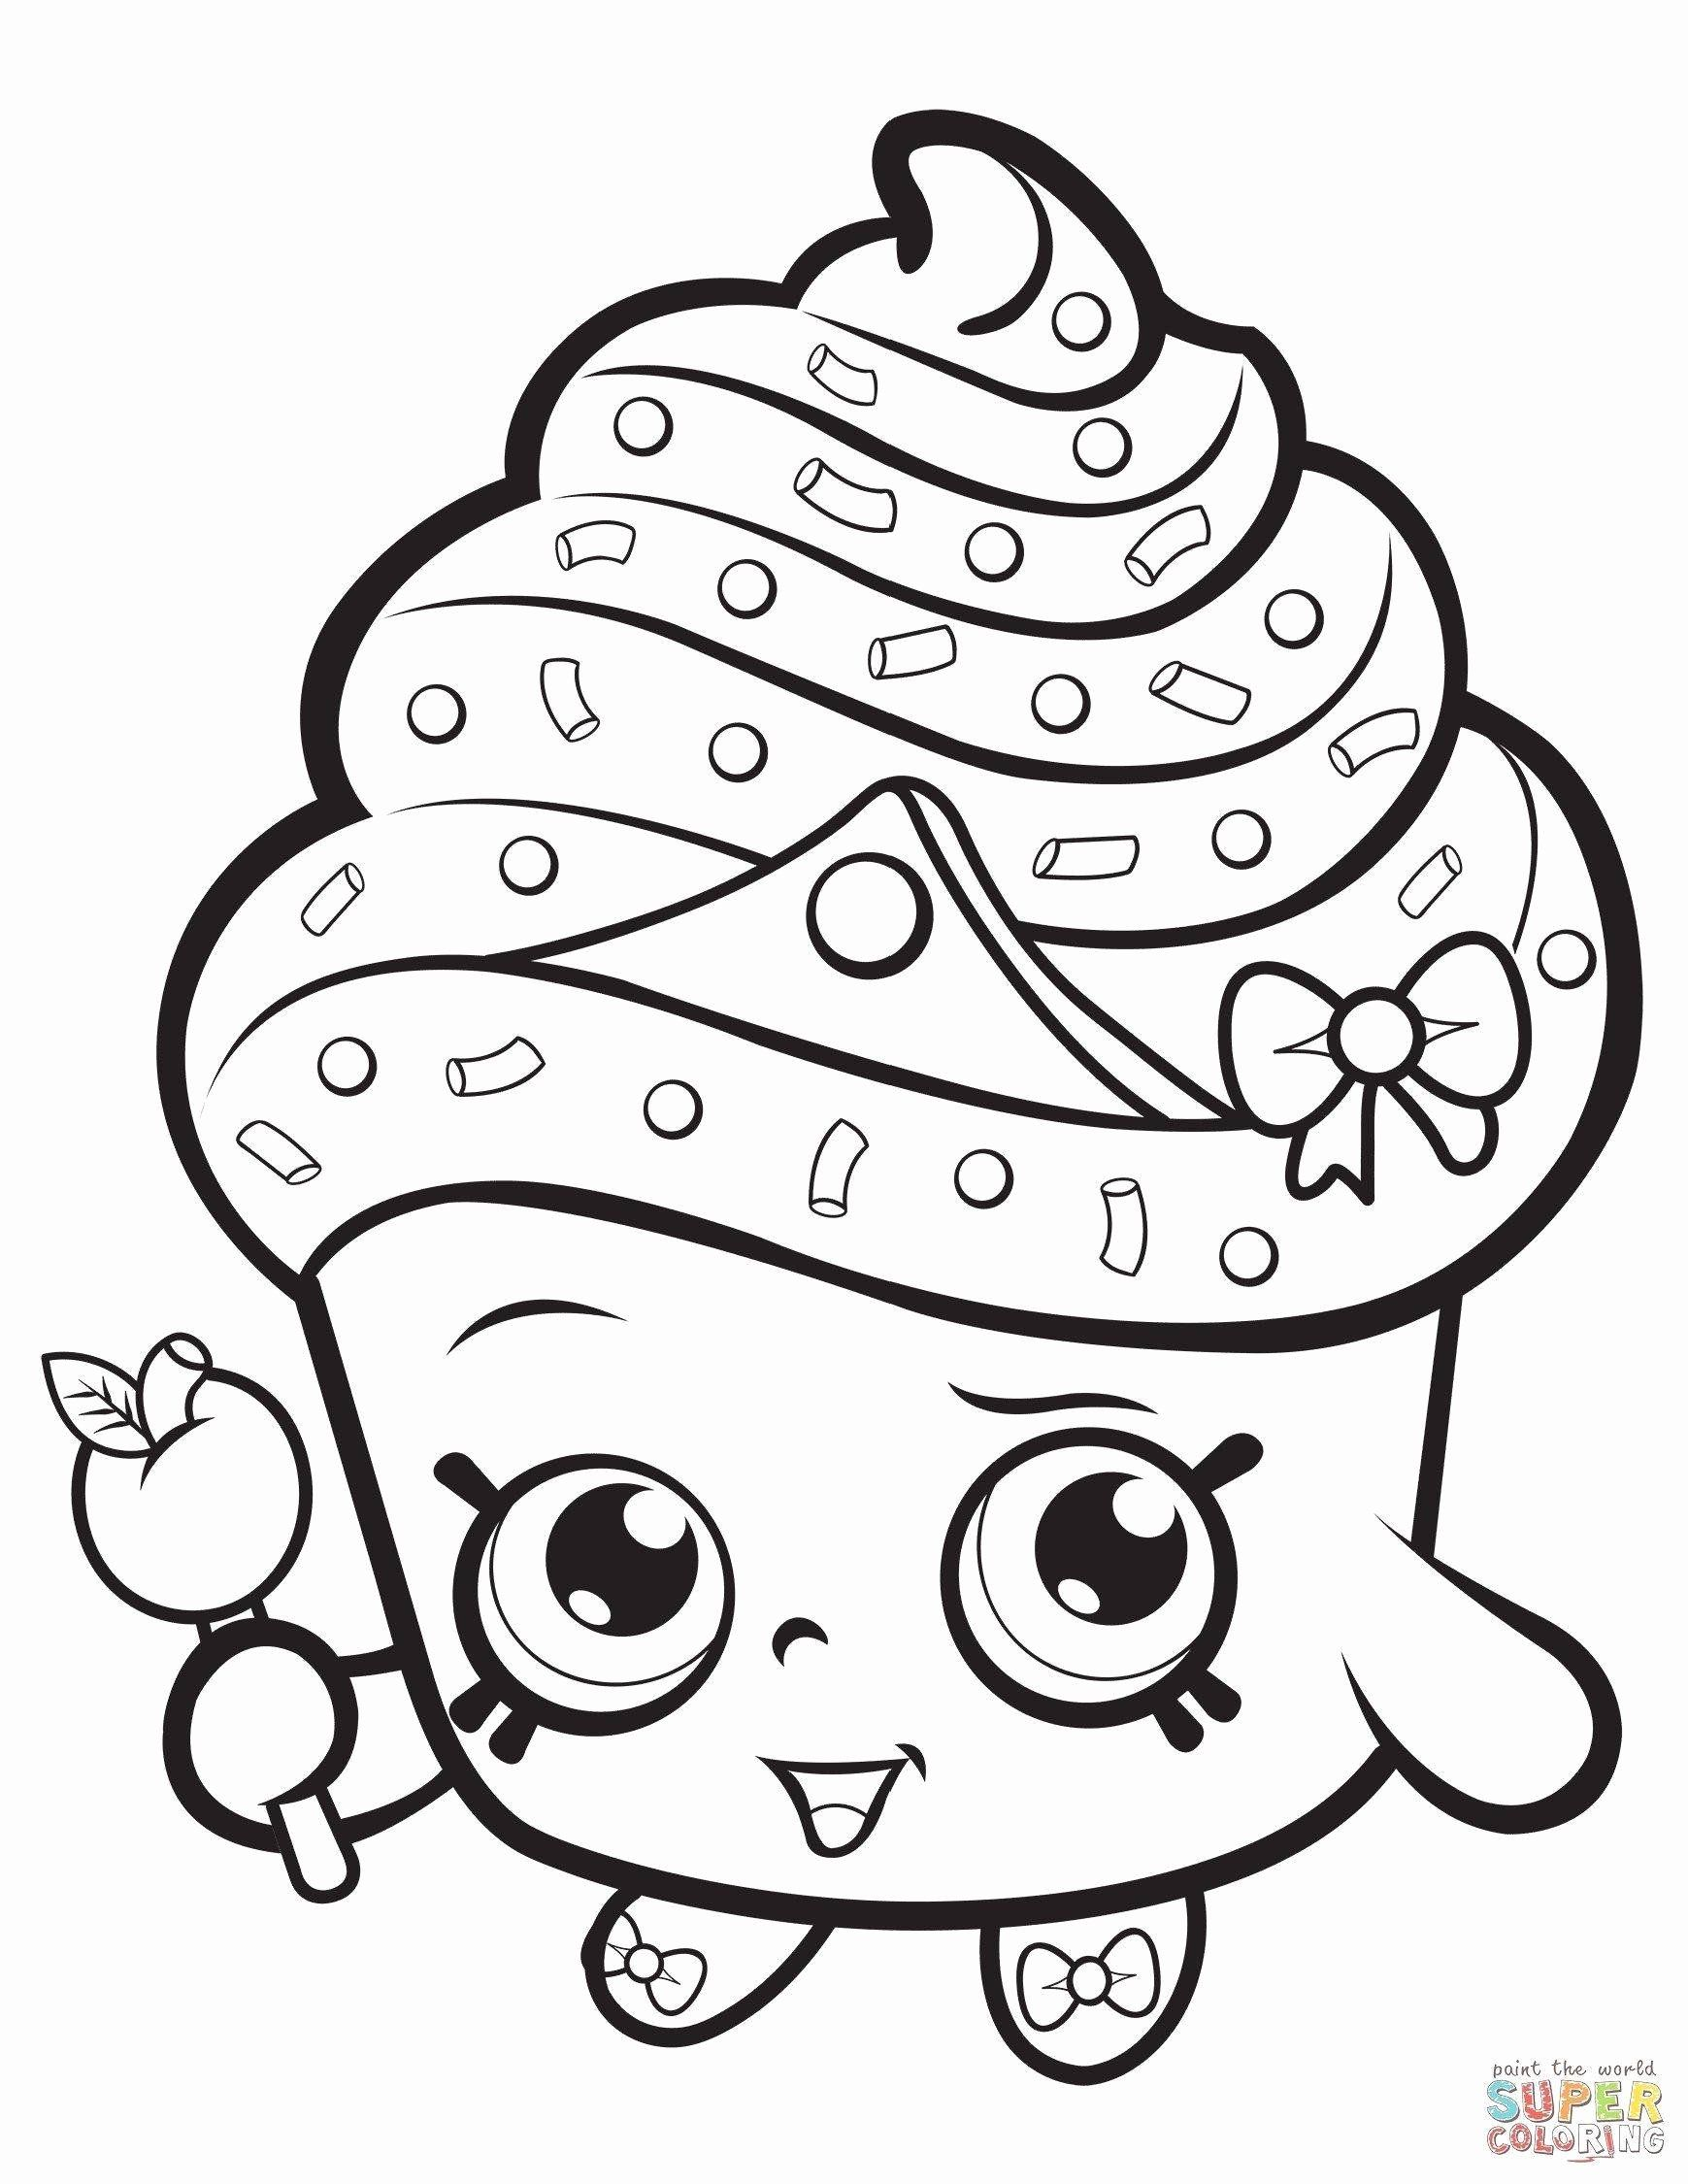 Shopkins Coloring Pages Free Printable Awesome Shopkin Coloring